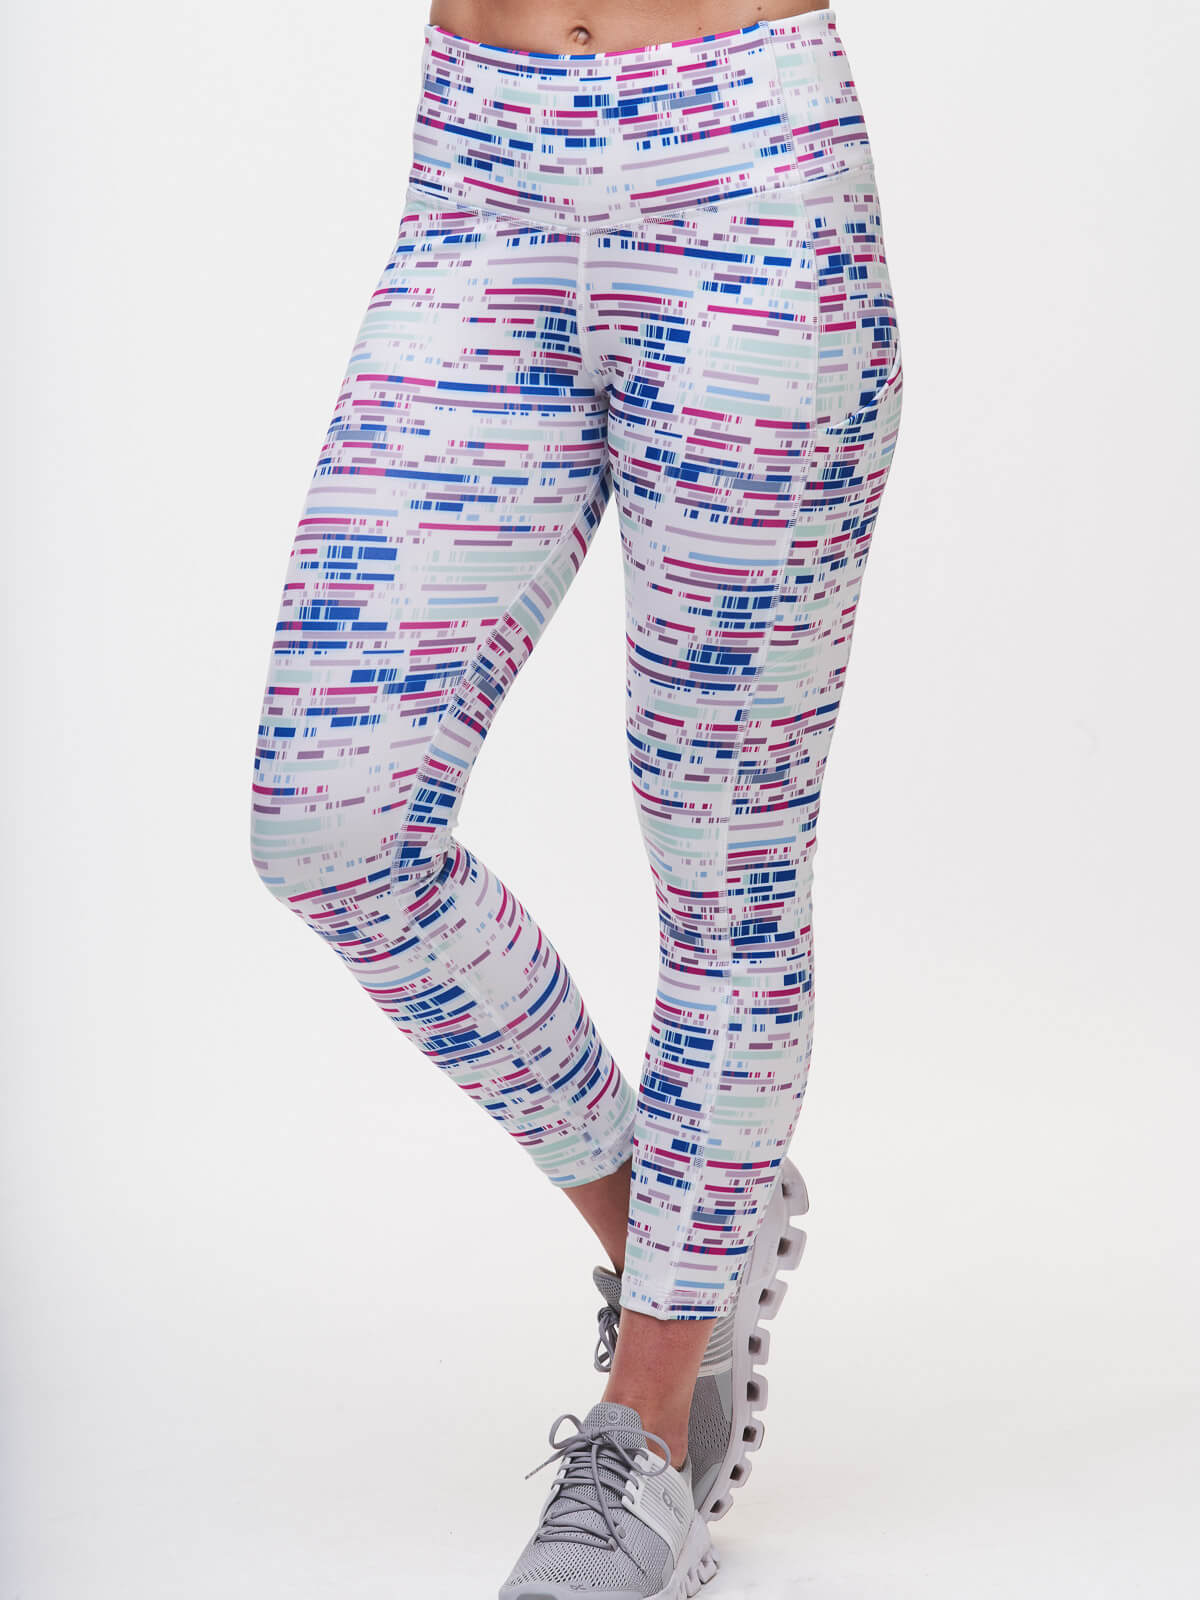 Women's Uptown High Rise 7/8 Pocket Legging (UrbanFlow)(Kit)